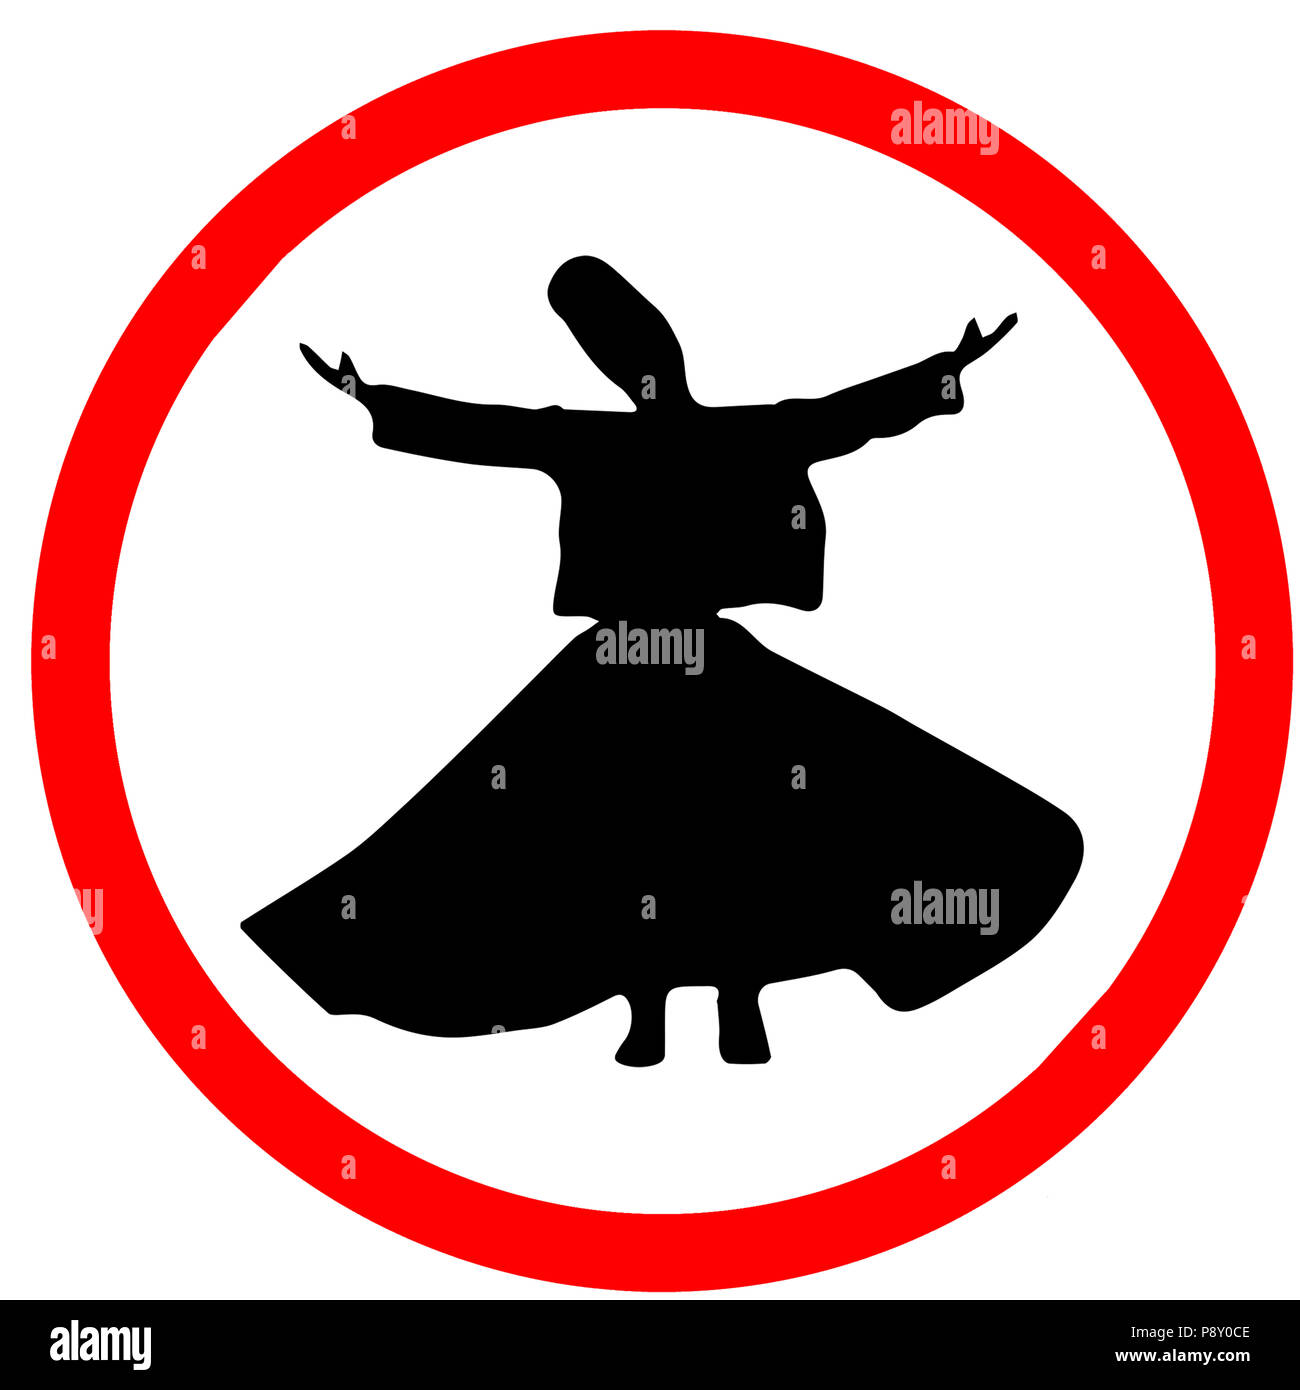 Whirling Dervishes Ceremony caution warning red triangular road sign isolated on white background. - Stock Image